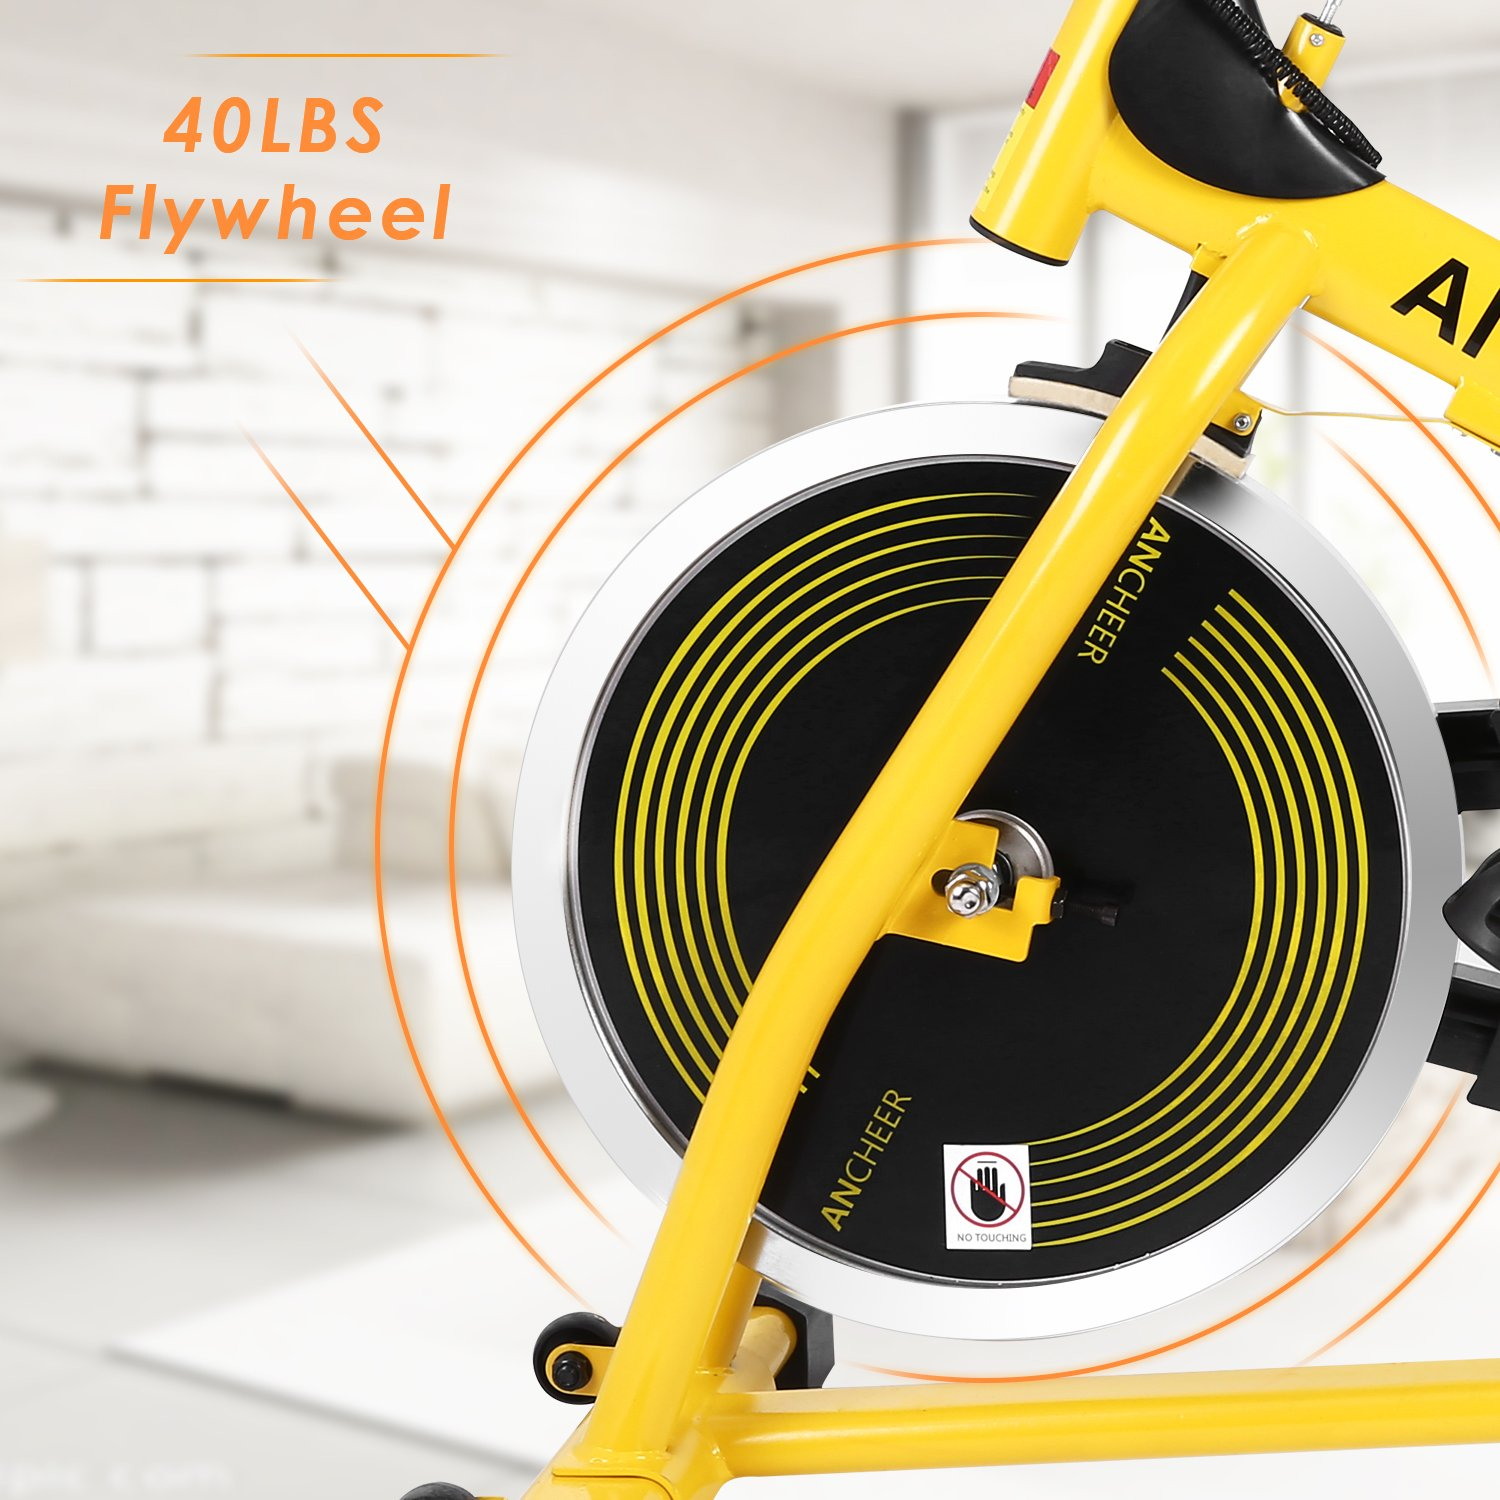 ANCHEER Stationary Bike, 40 LBS Flywheel Belt Drive Indoor Cycling Exercise Bike with Pulse, Elbow Tray (Model: ANCHEER-A5001) (Yellow) by ANCHEER (Image #3)